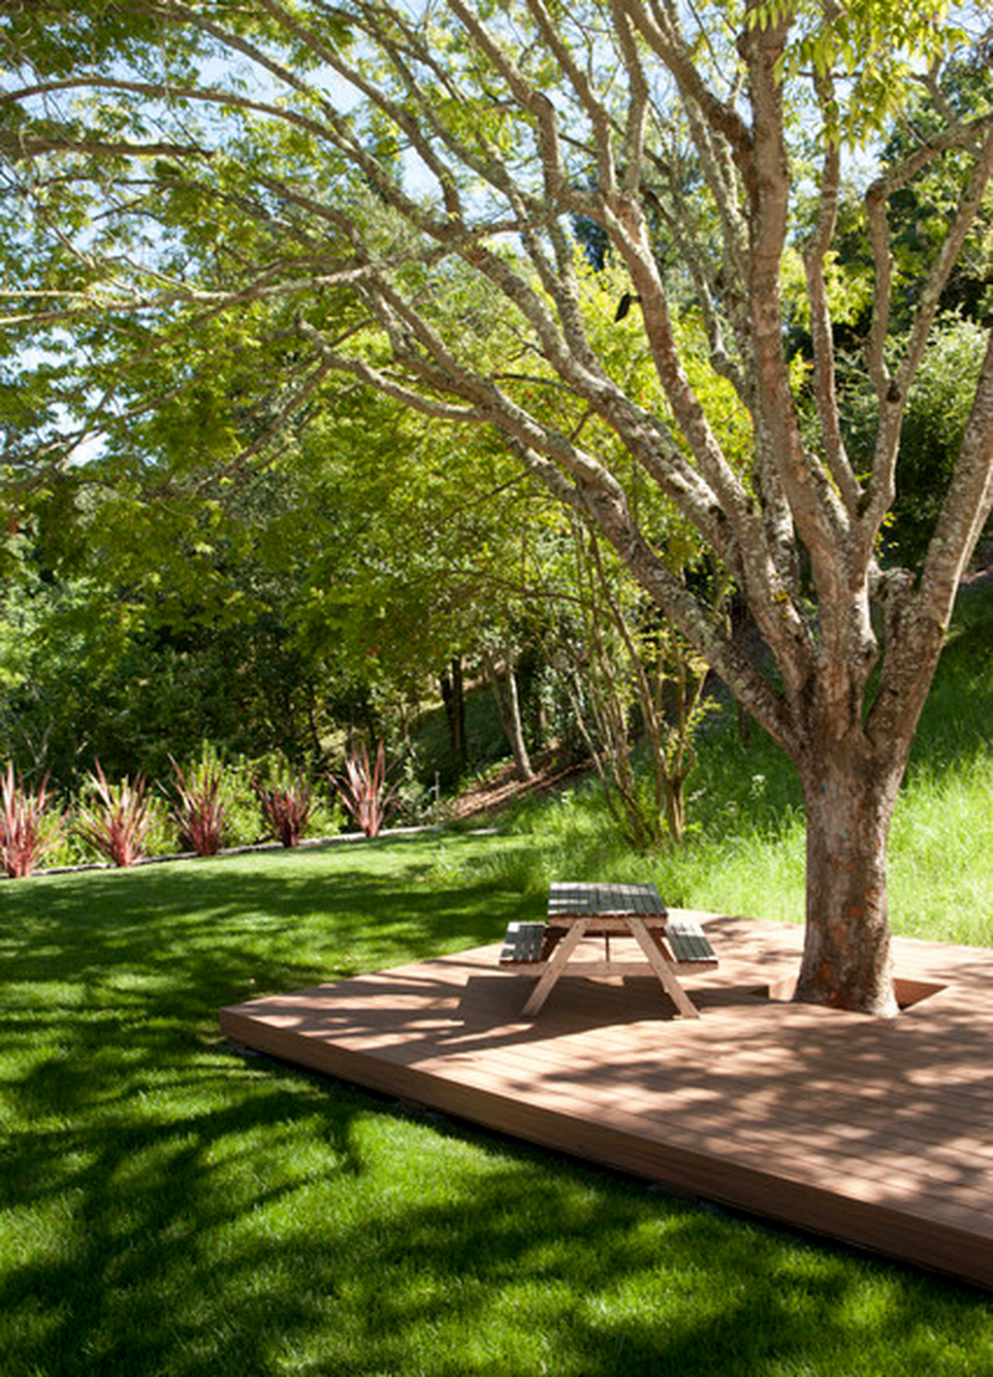 11 Amazing Big Tree Landscaping Ideas - HOMISHOME - backyard ideas under $10 000